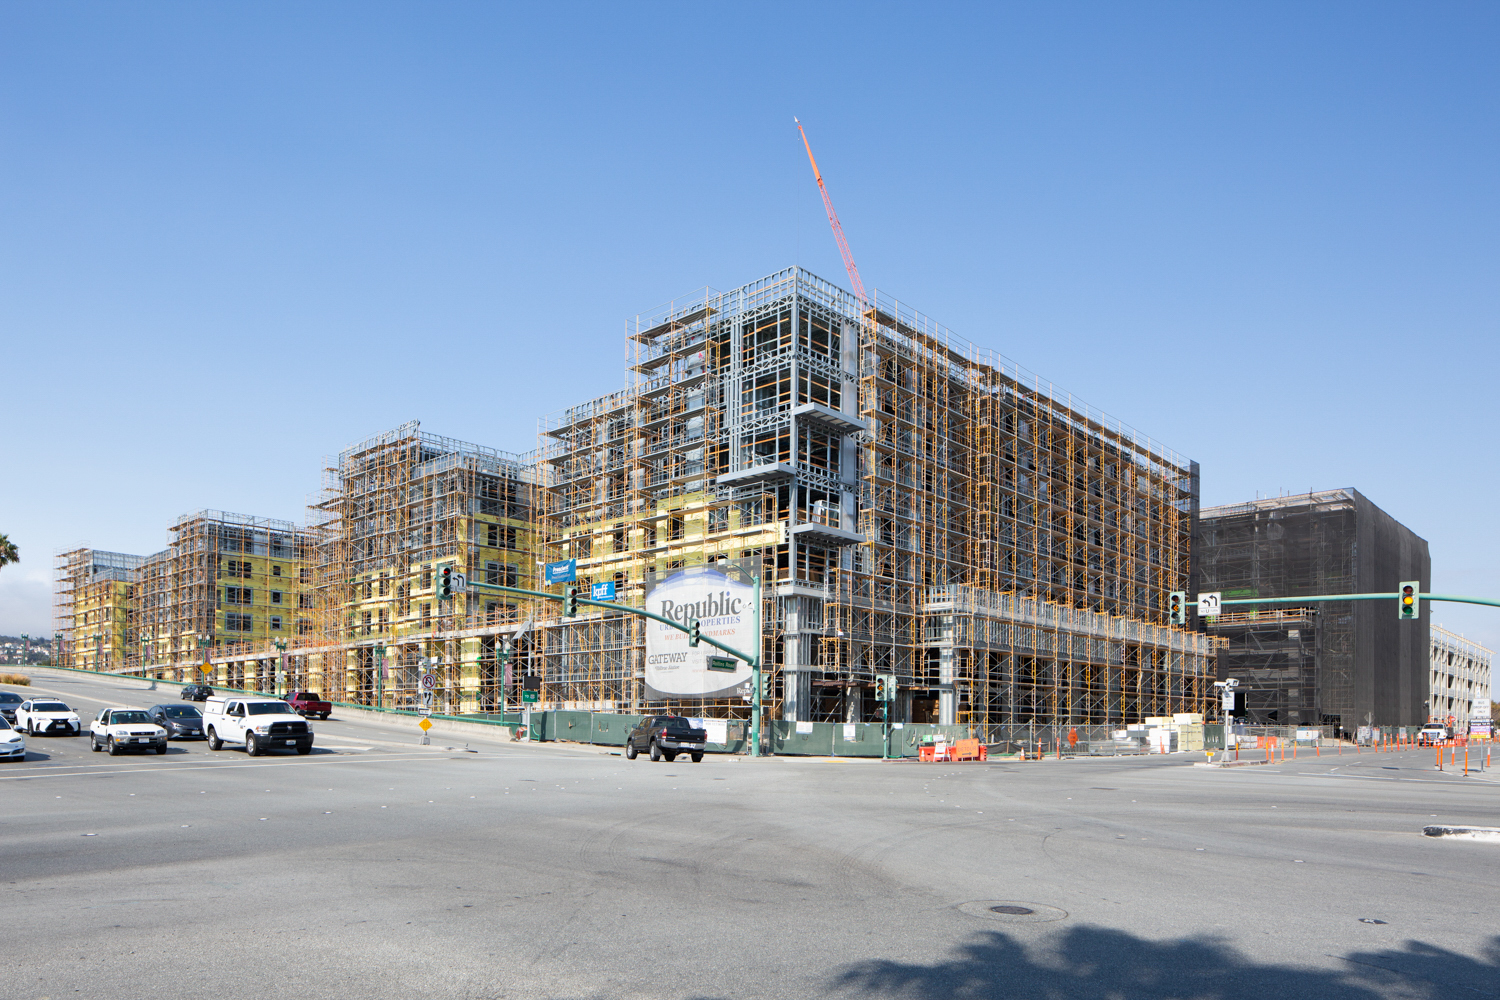 Gateway at Millbrae Parcel 5B under construction, image by Andrew Campbell Nelson